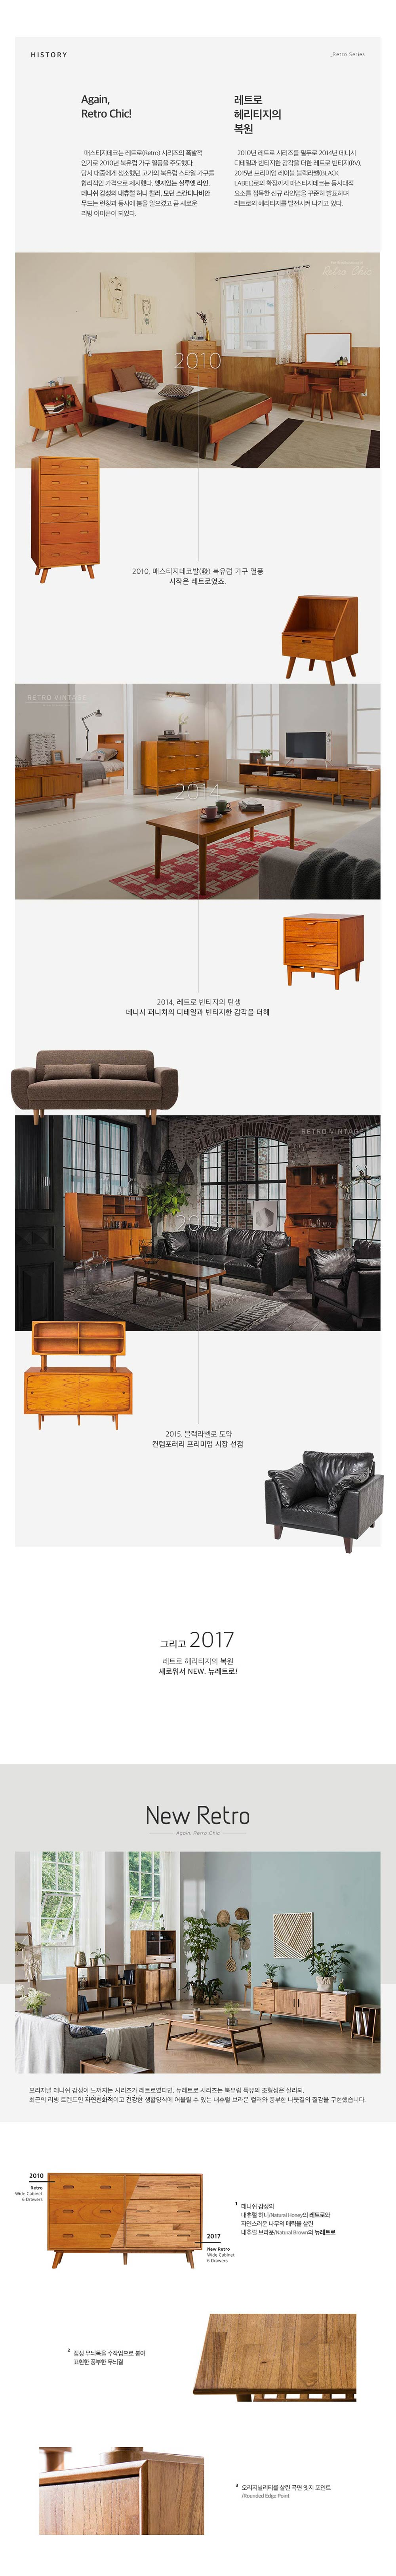 New_Retro_Stool_Furniture_Online_Singapore_History_by_born_in_colour